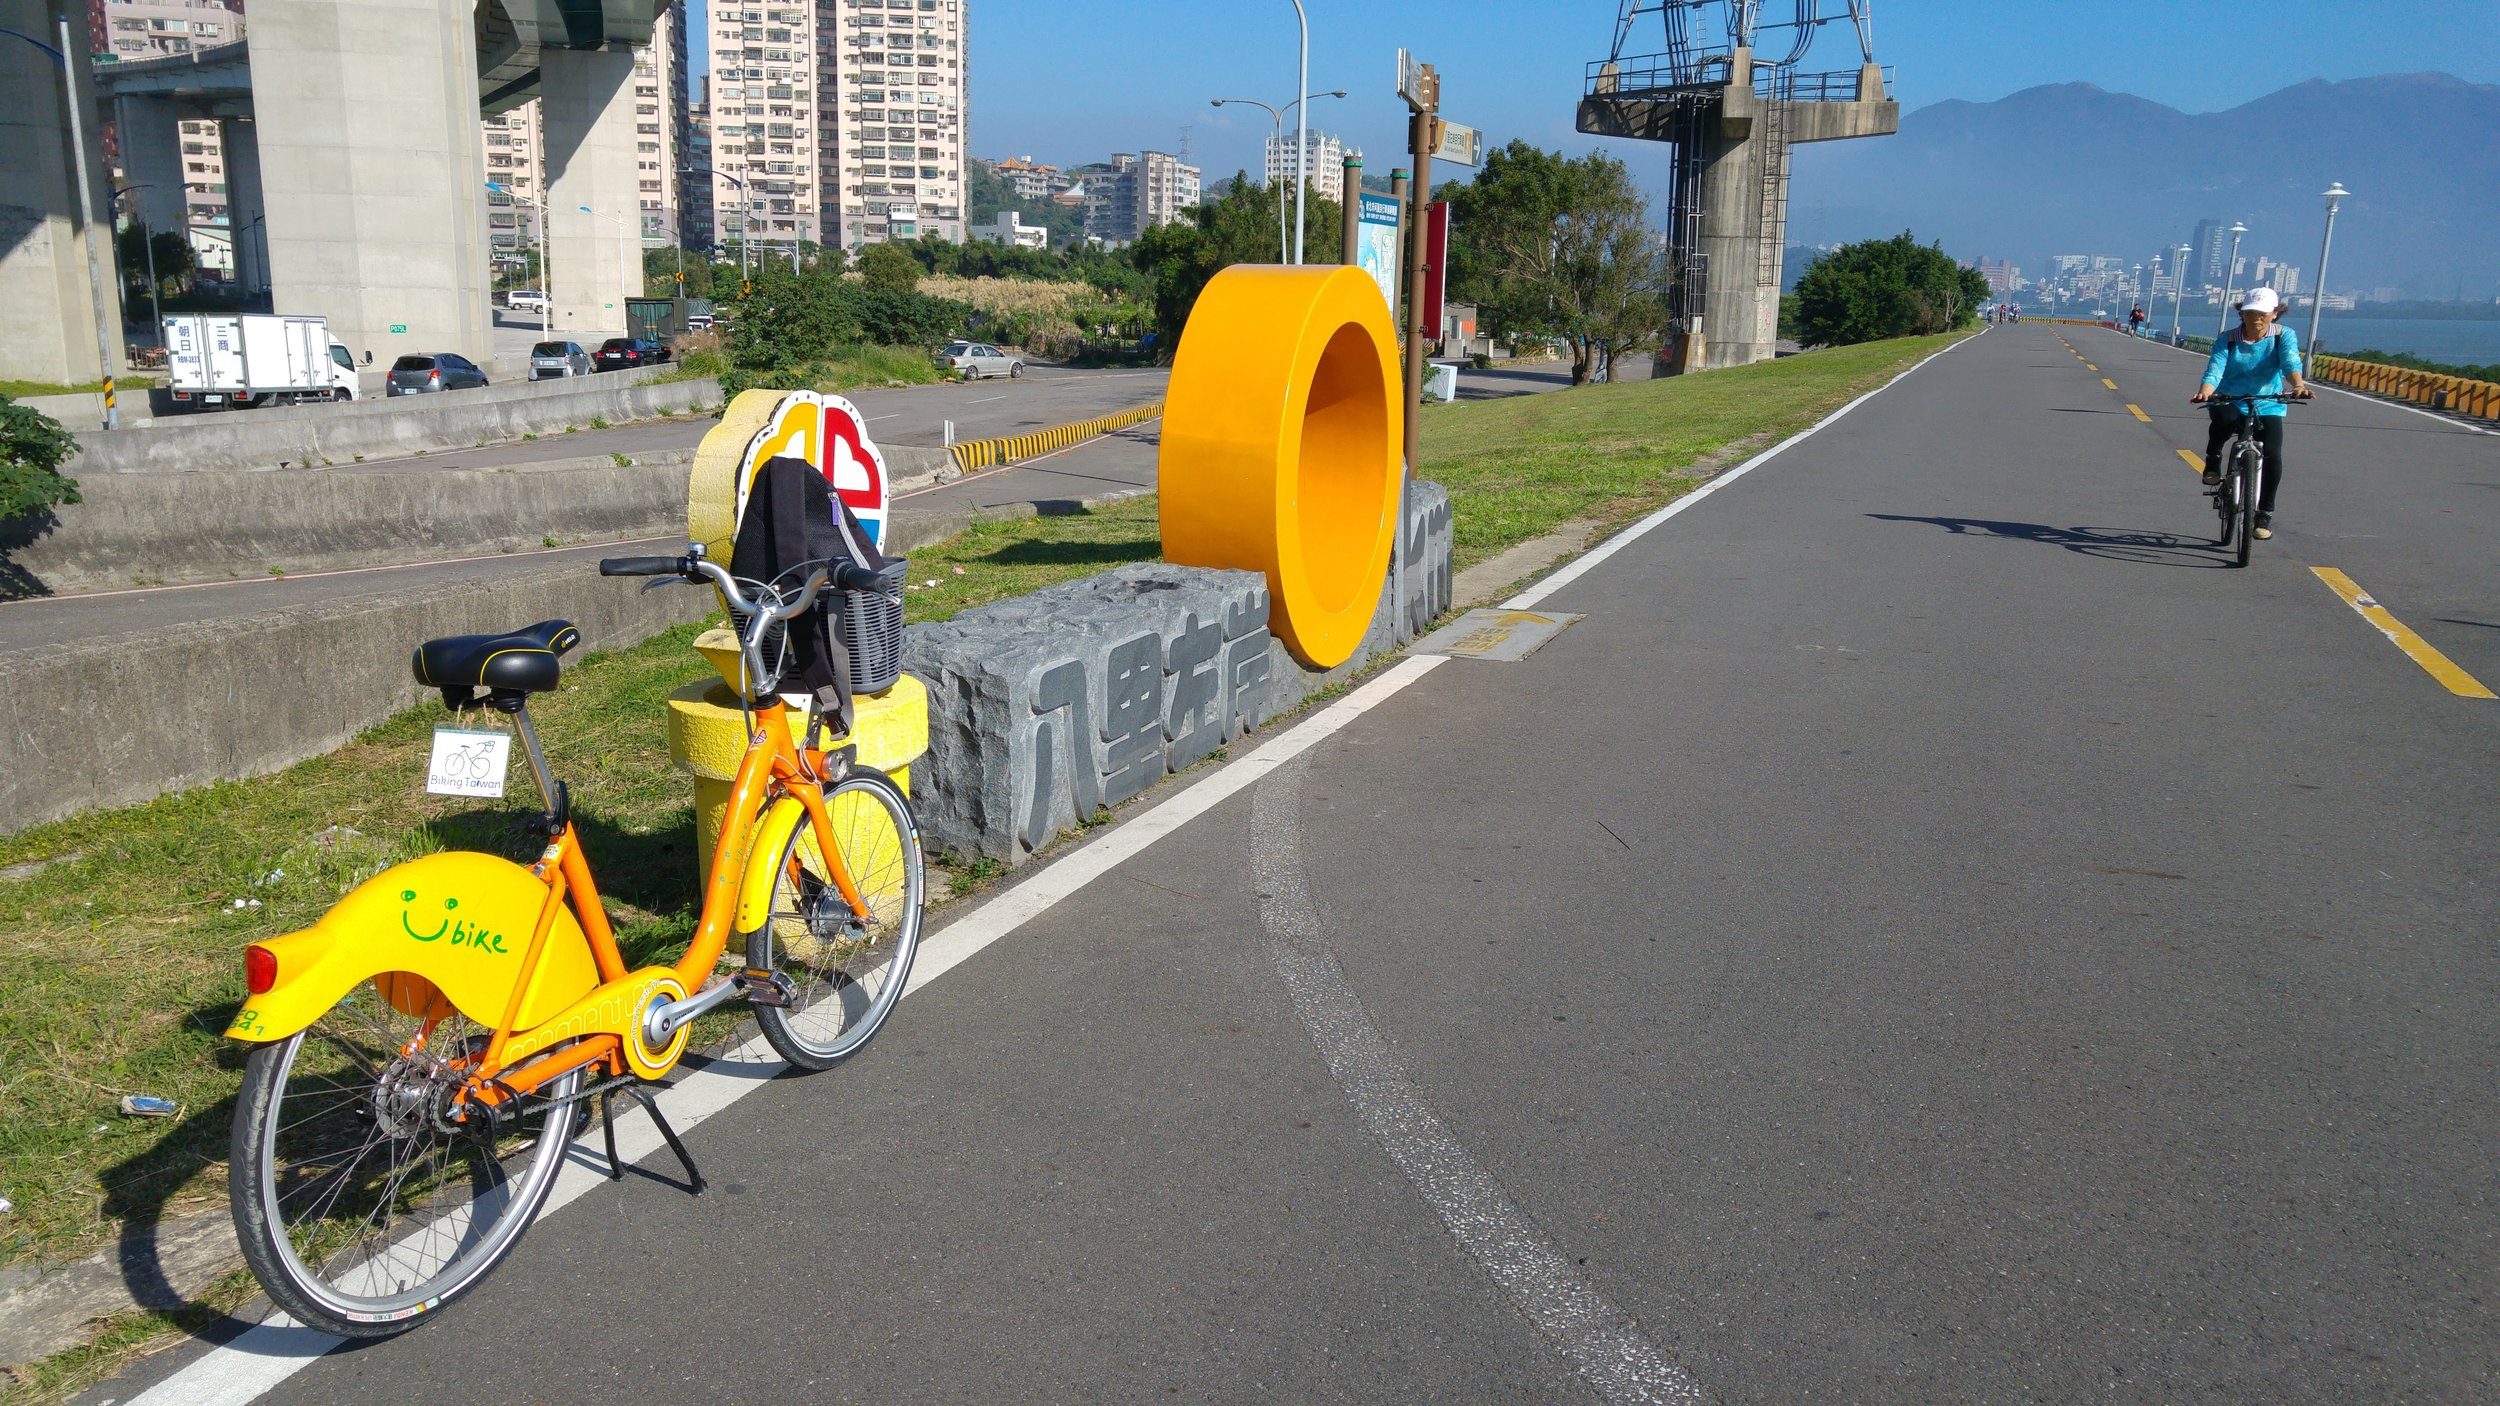 Strating point of Bali Left Bank of Tamshui River Bike Path